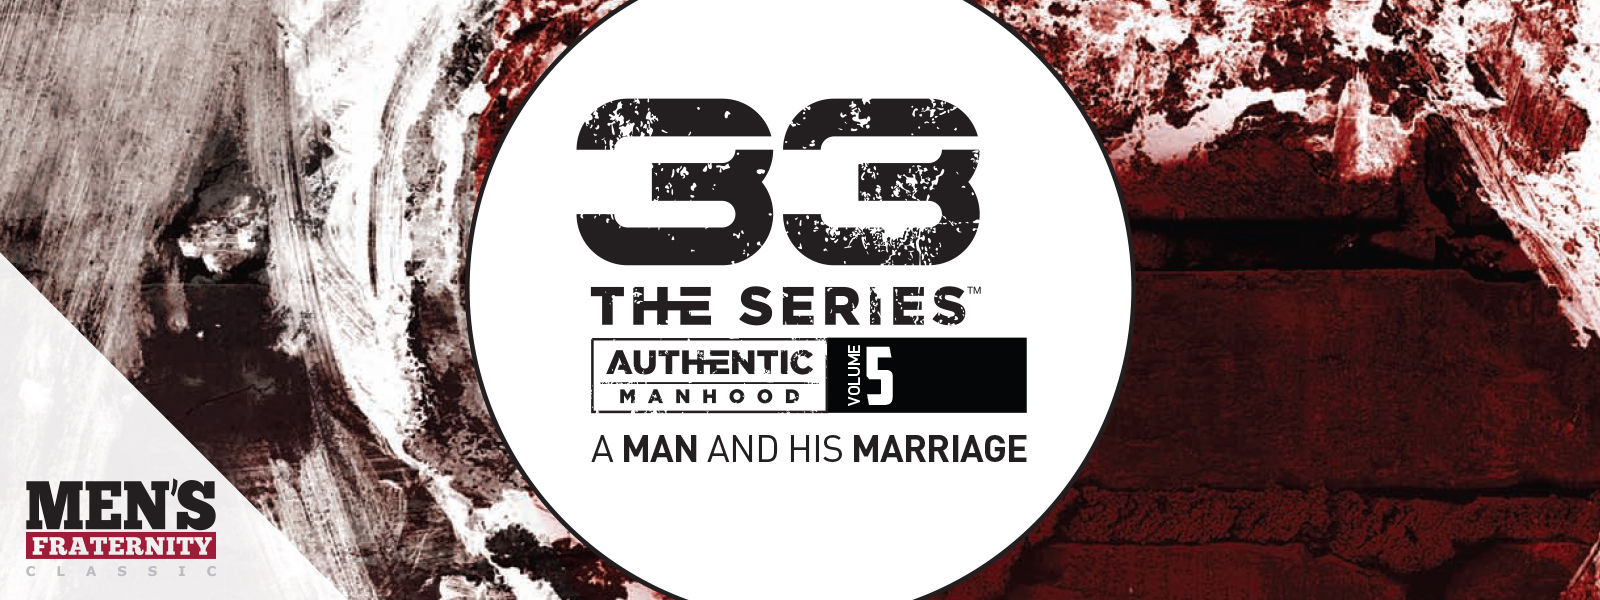 33 The Series (Vol 5): A Man and His Marriage